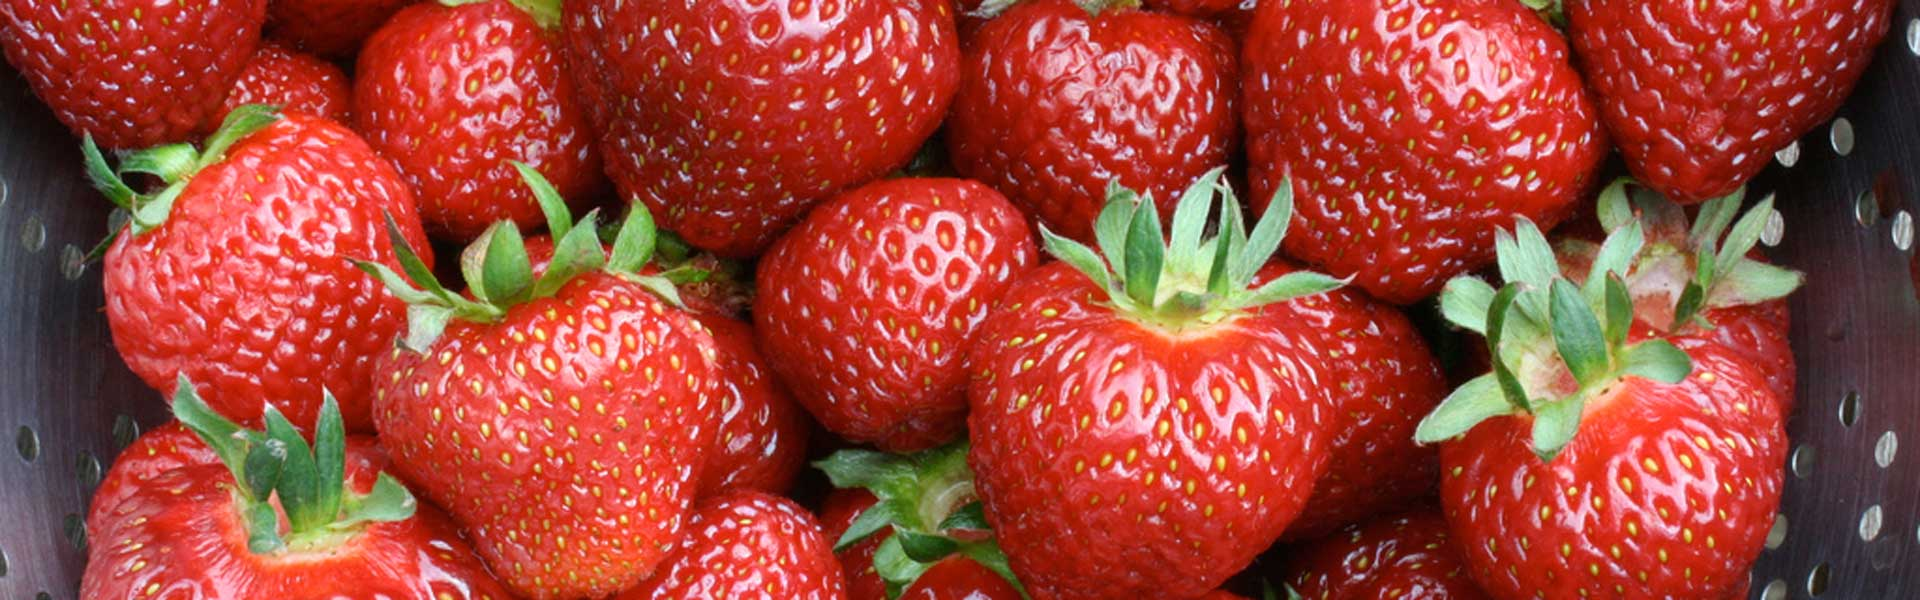 8476-red-strawberries